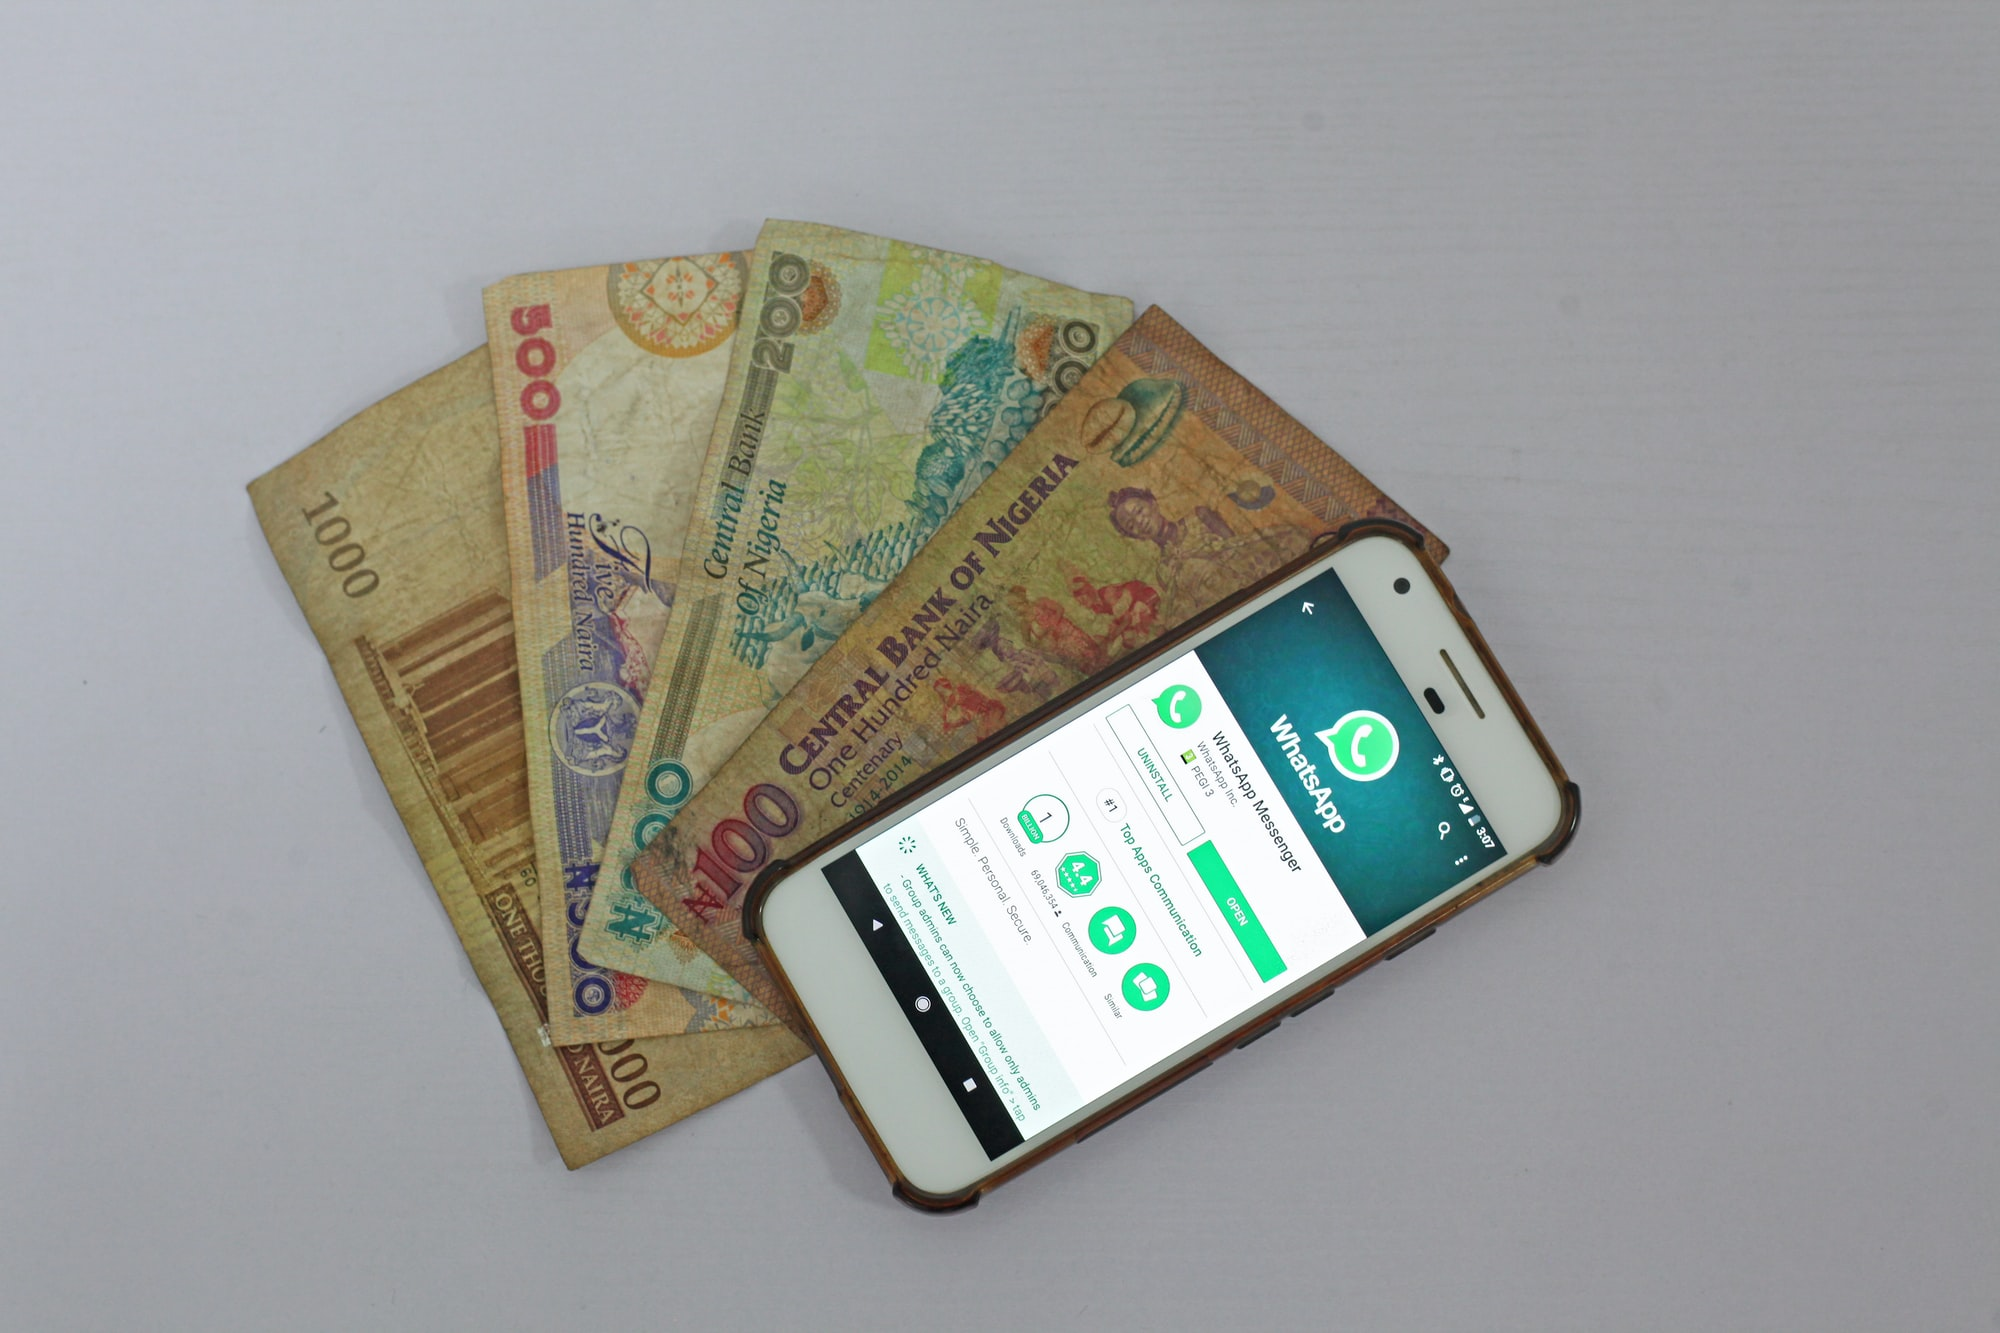 Use WhatsApp to buy goods and send cash!